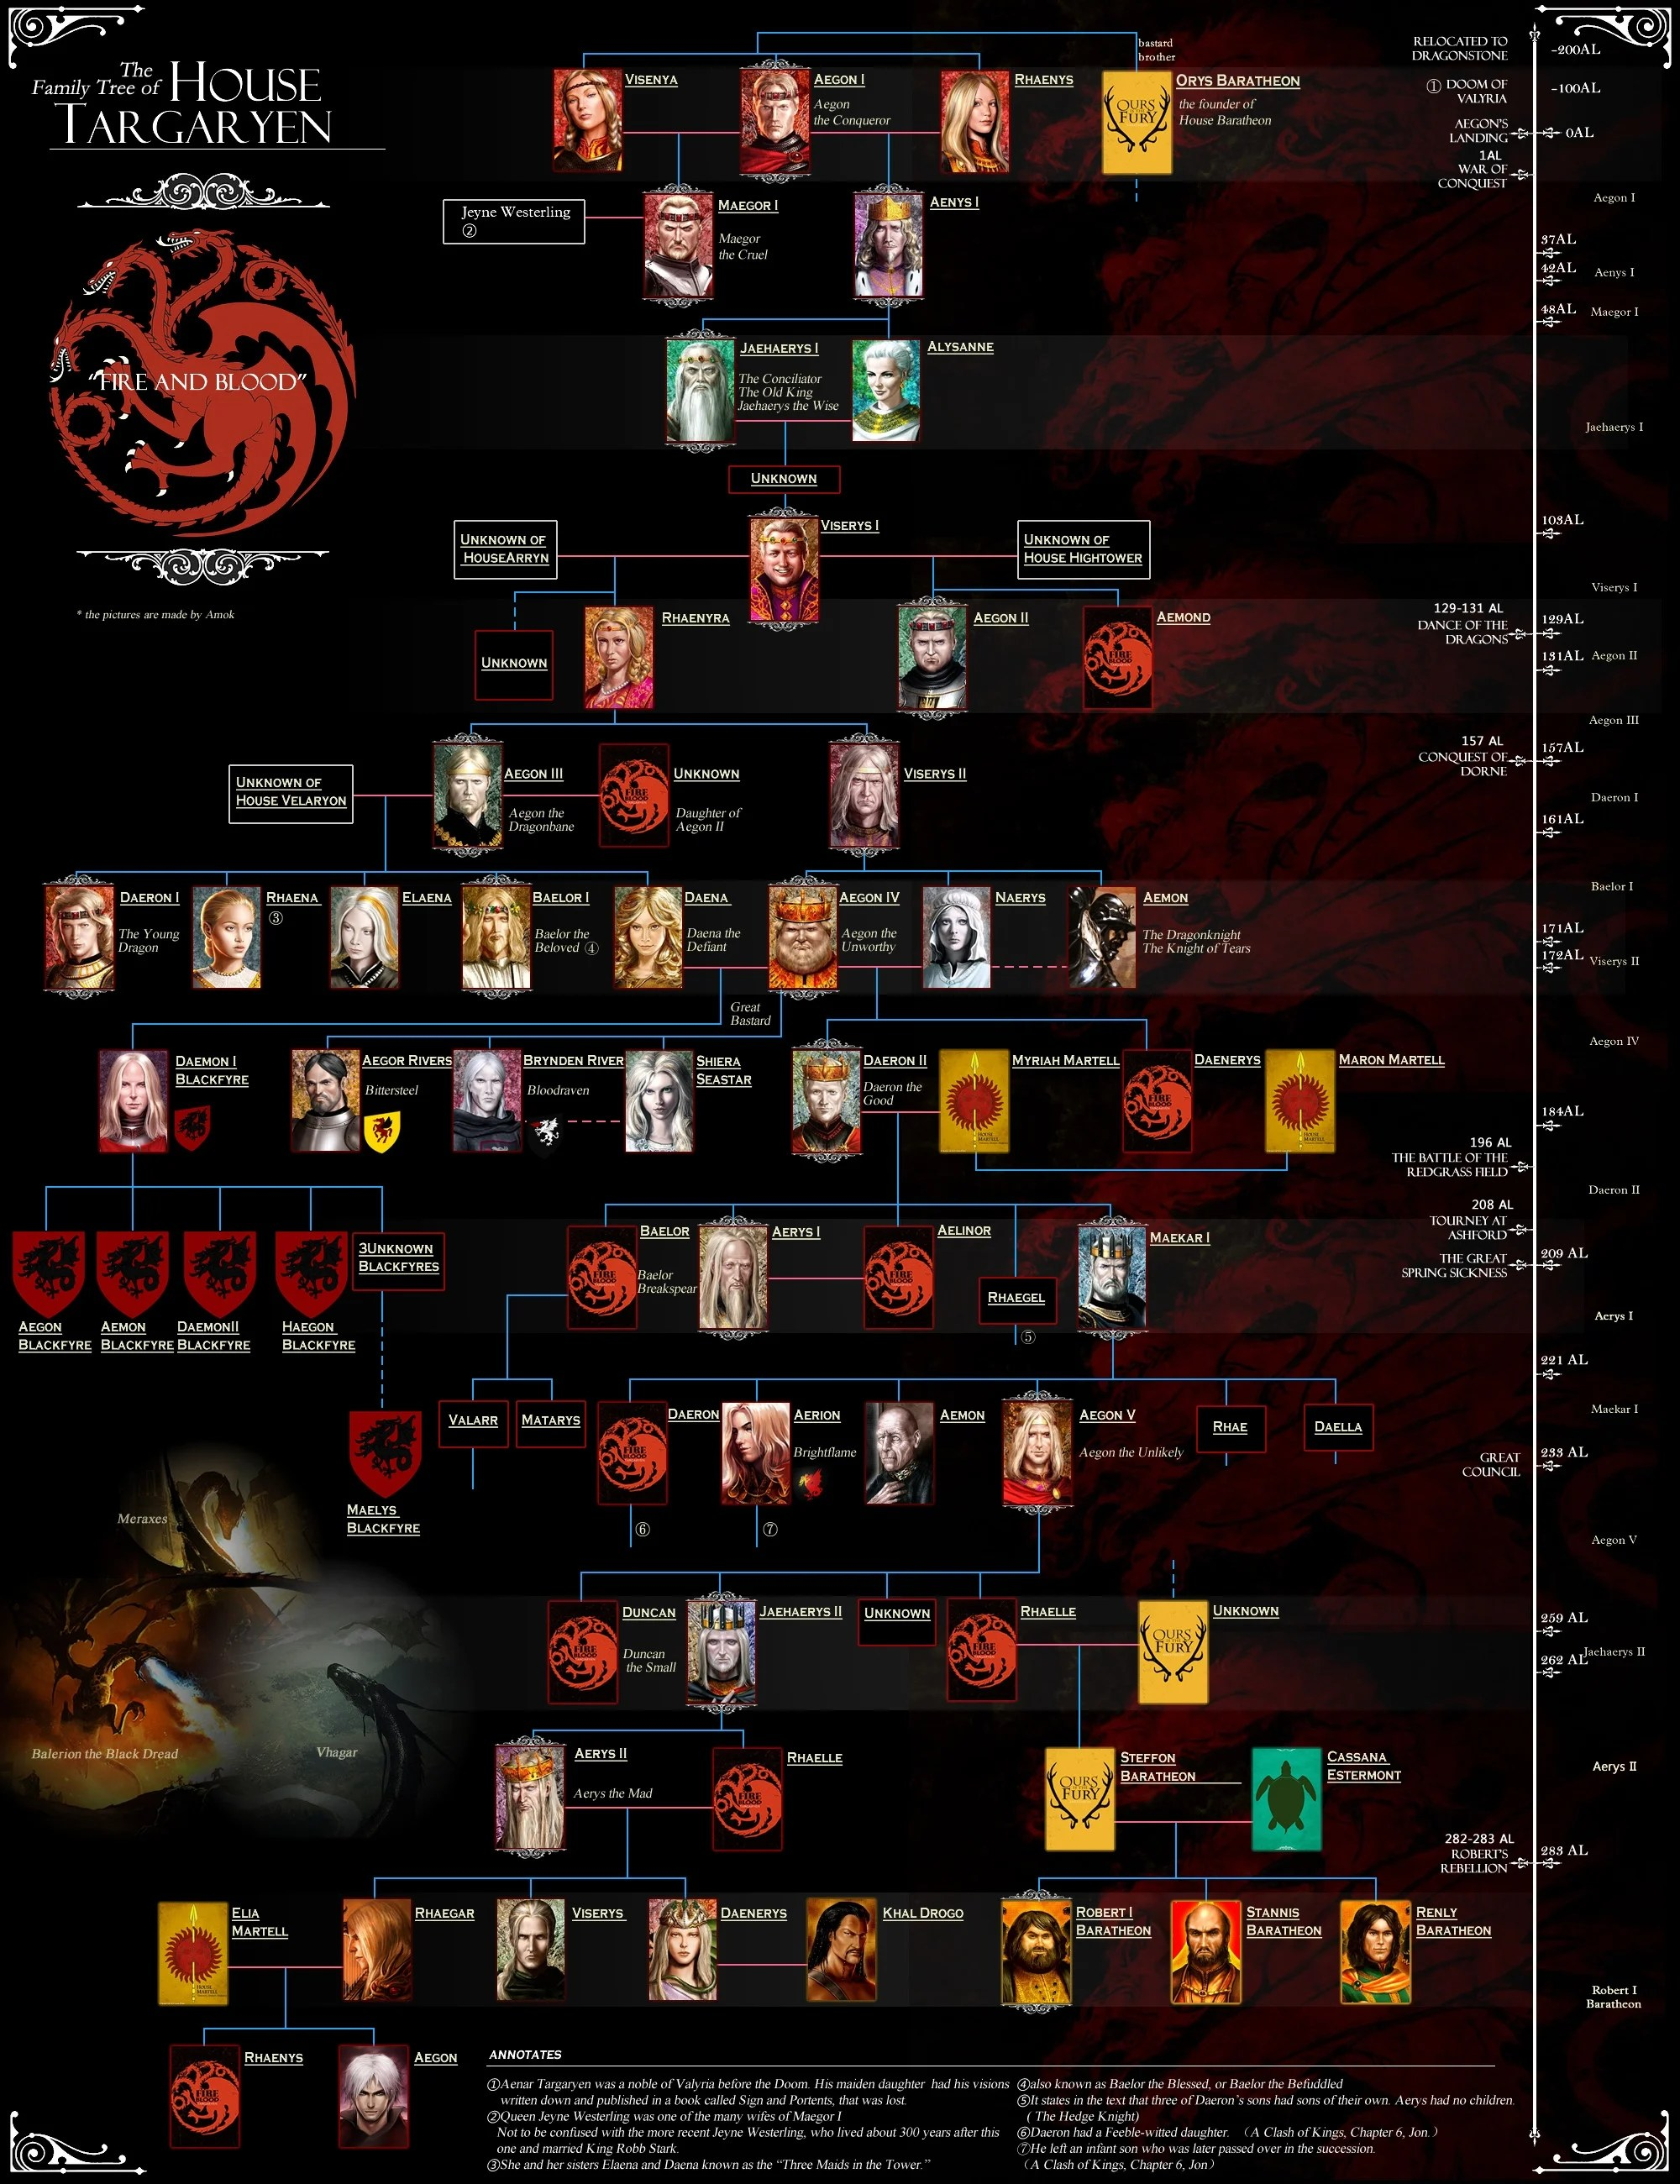 book synopsis and review a song of ice and fire saga the nerd nexus targaryen family tree middot book synopsis and review a song of ice and fire saga